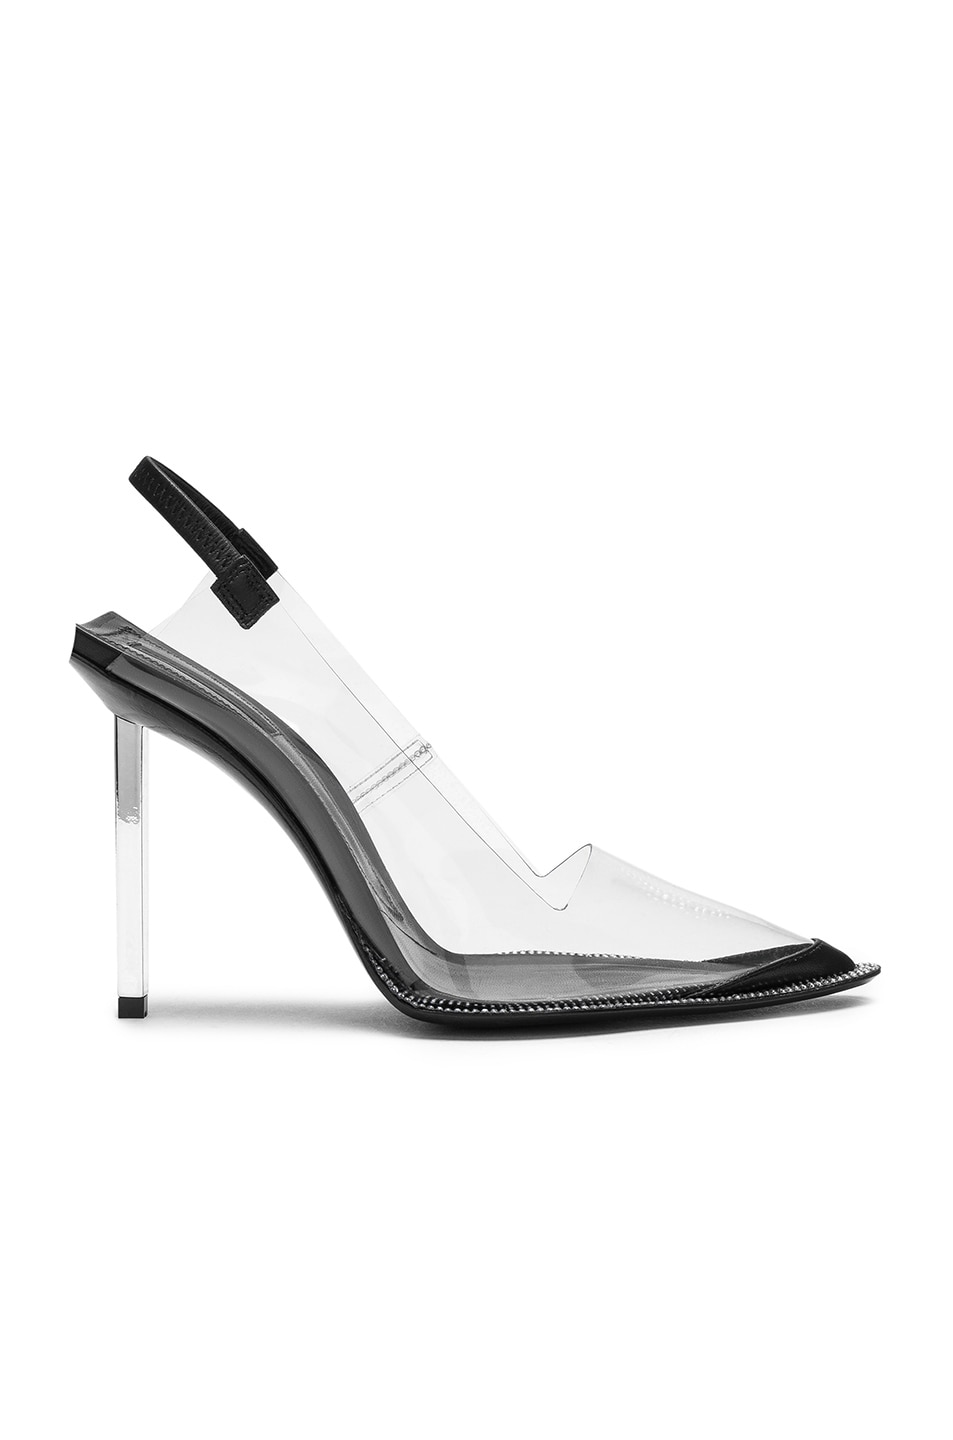 Image 1 of Alexander Wang Marlow Heel in Black